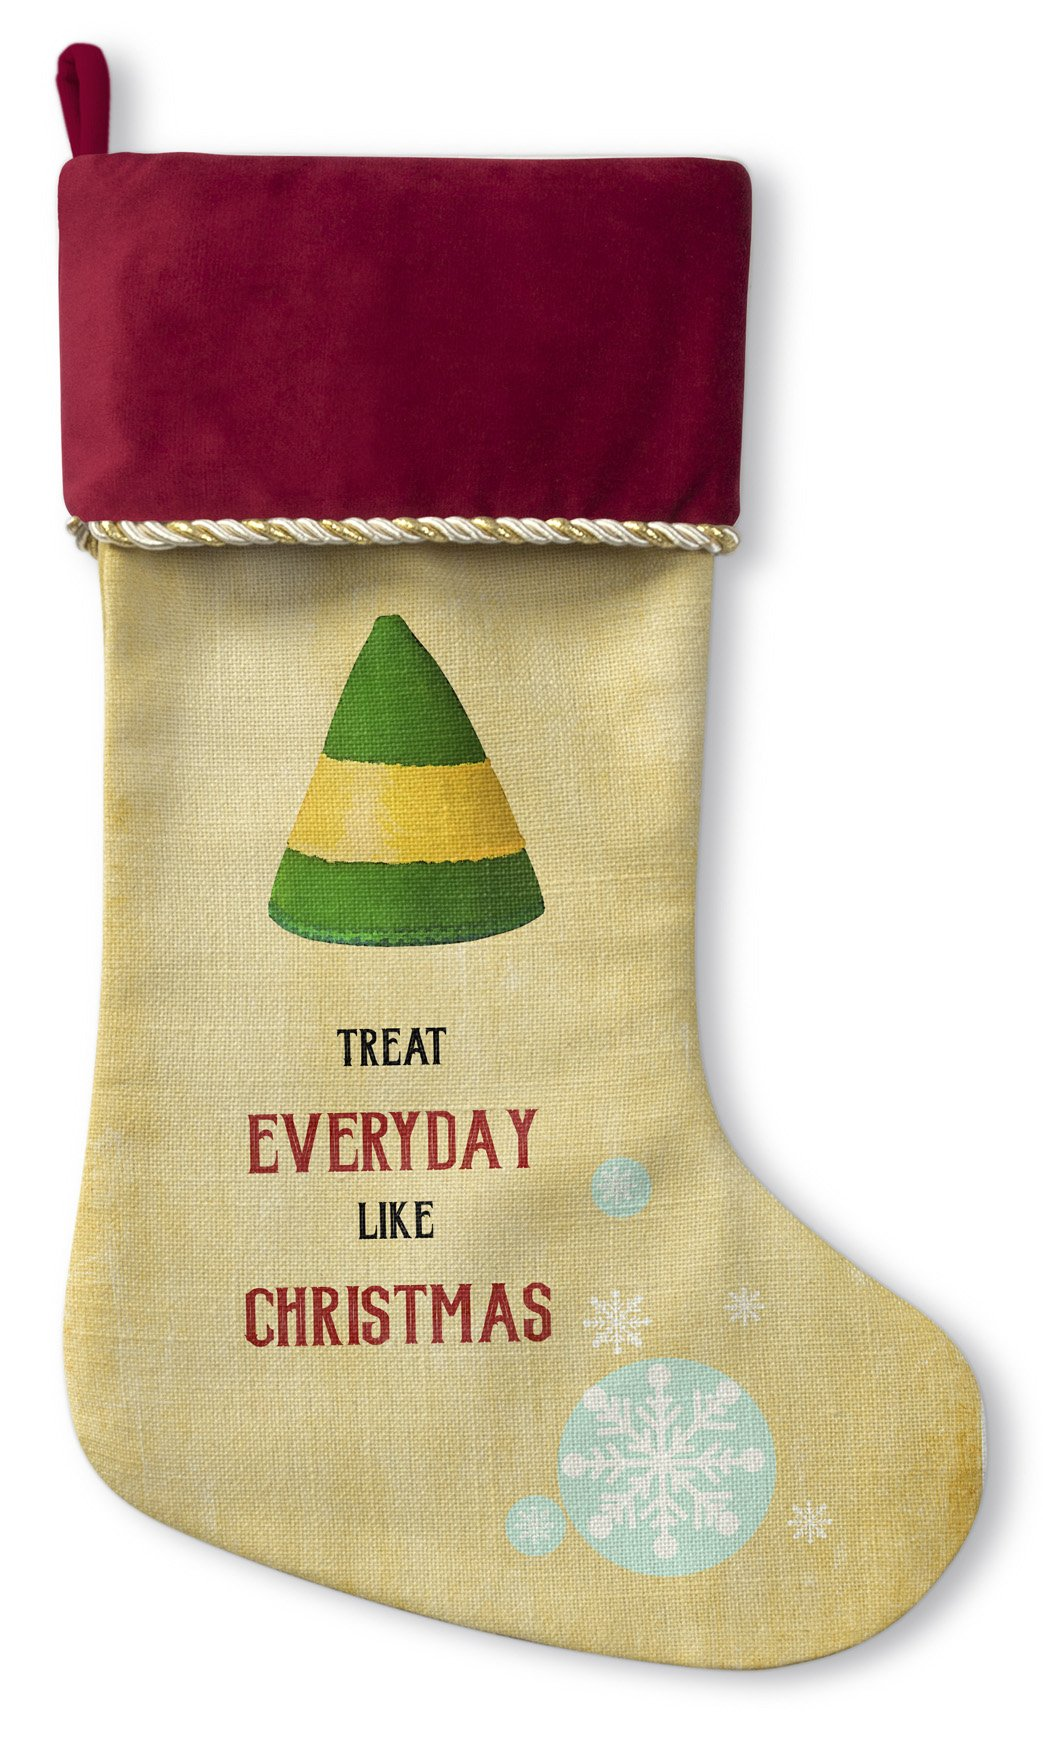 KAVKA DESIGNS Everyday Holiday Stocking Christmas Stocking, (Gold/Red/Green) - TRADITIONS Collection, Size: 12.5x21 - (TELAVC1046CSTR)